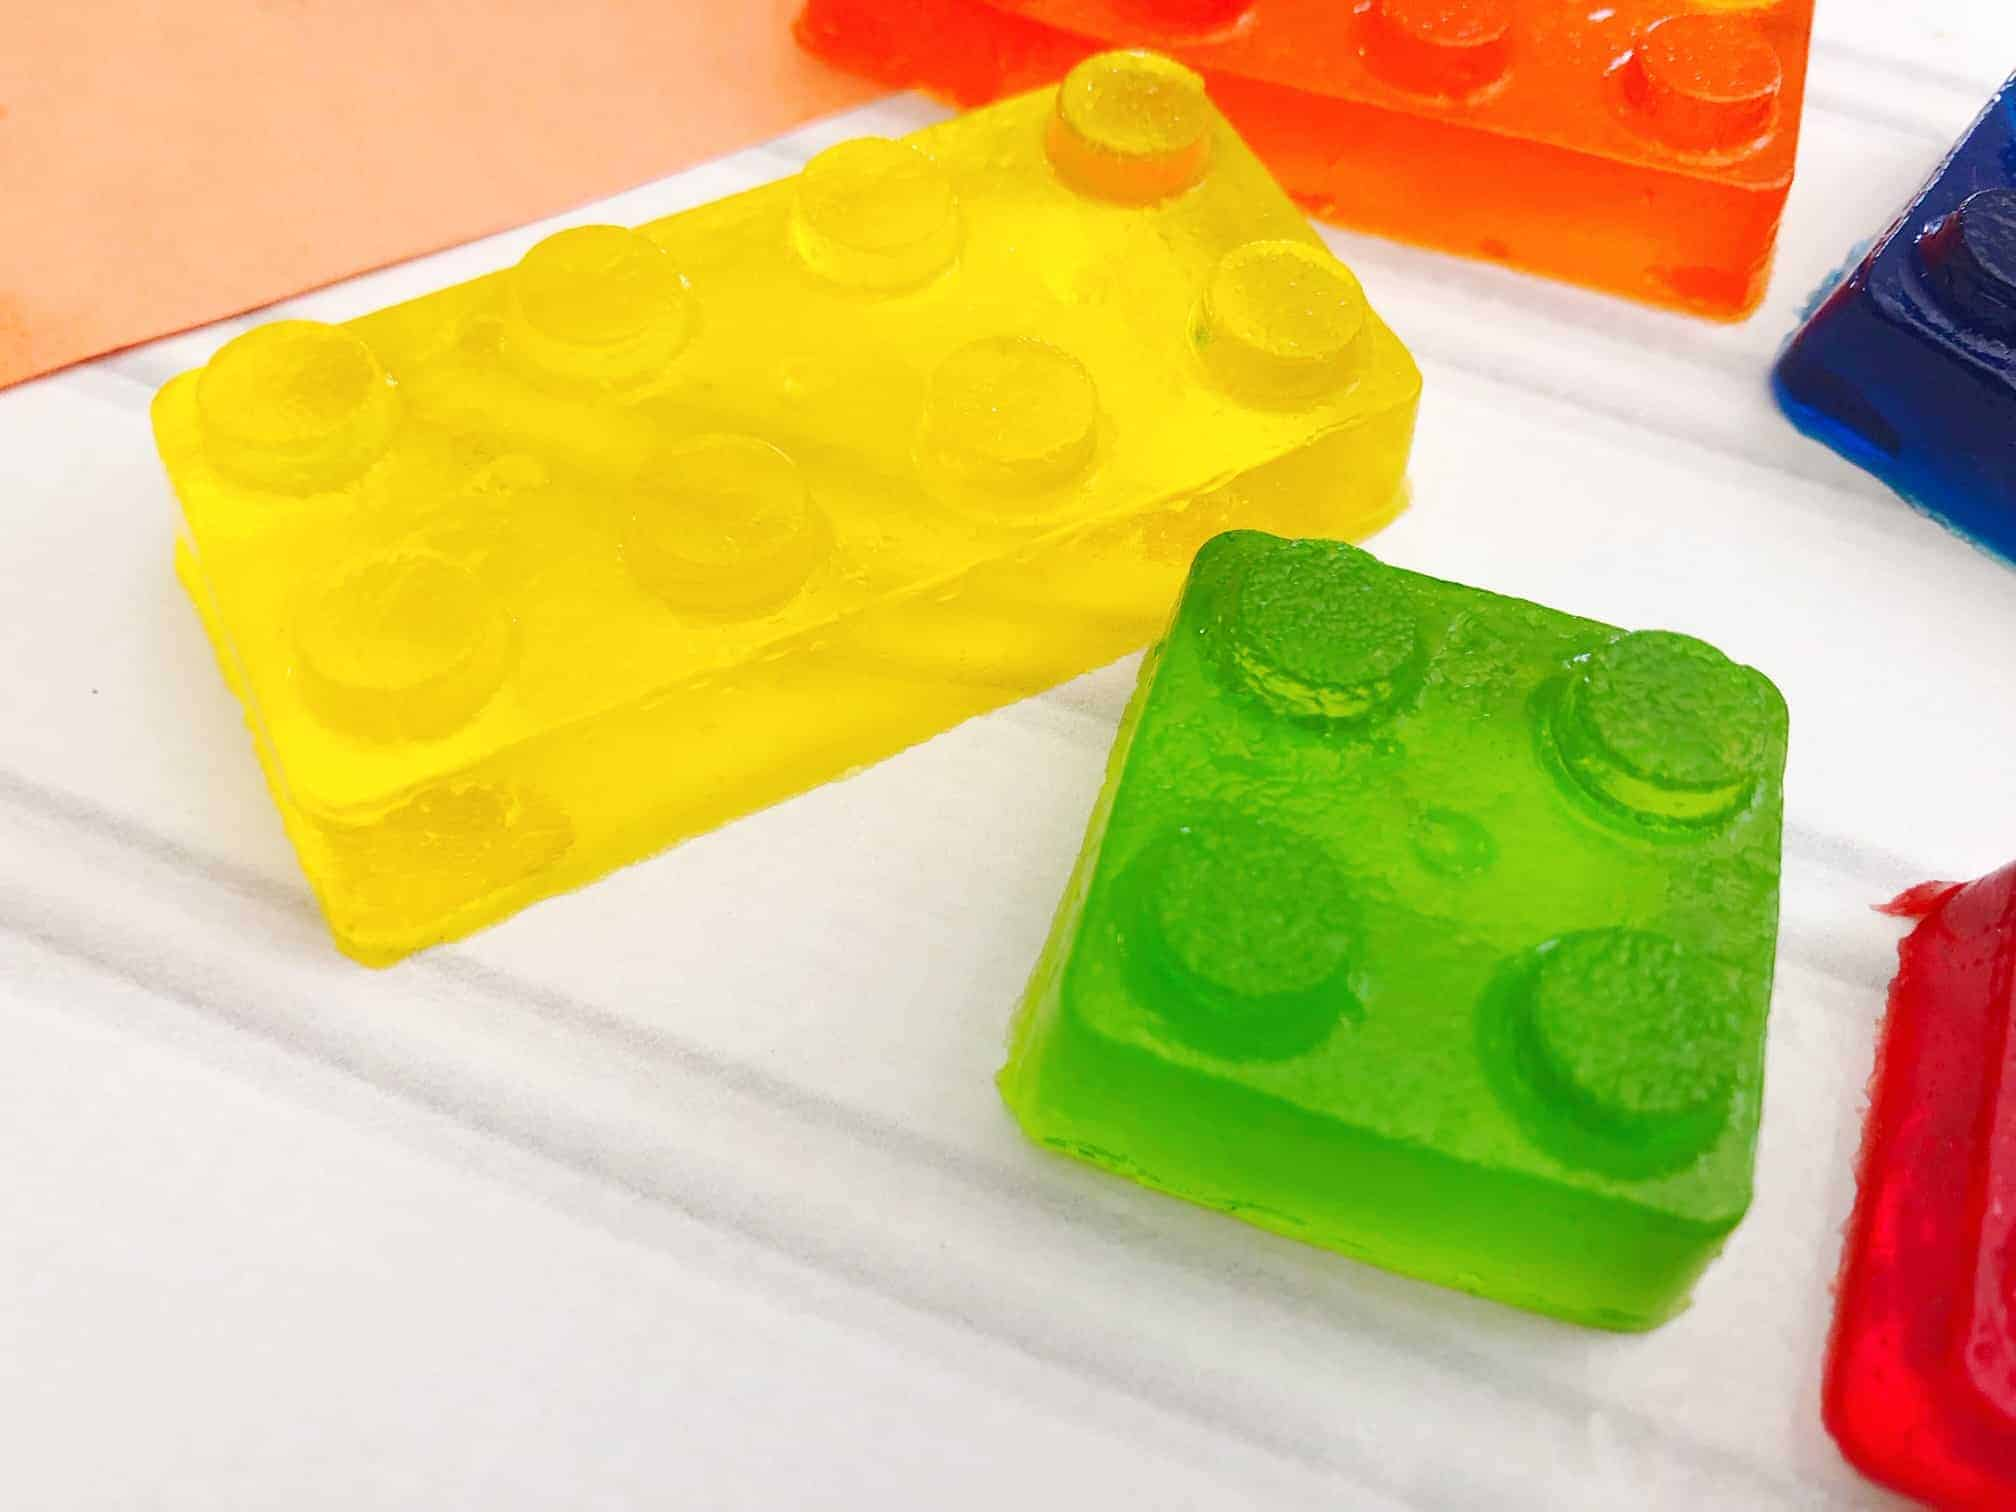 Sometimes it can be hard to figure out how keep kids occupied on rainy days, Click here for some tips to keep kids busy plus an awesome recipe for jello legos!